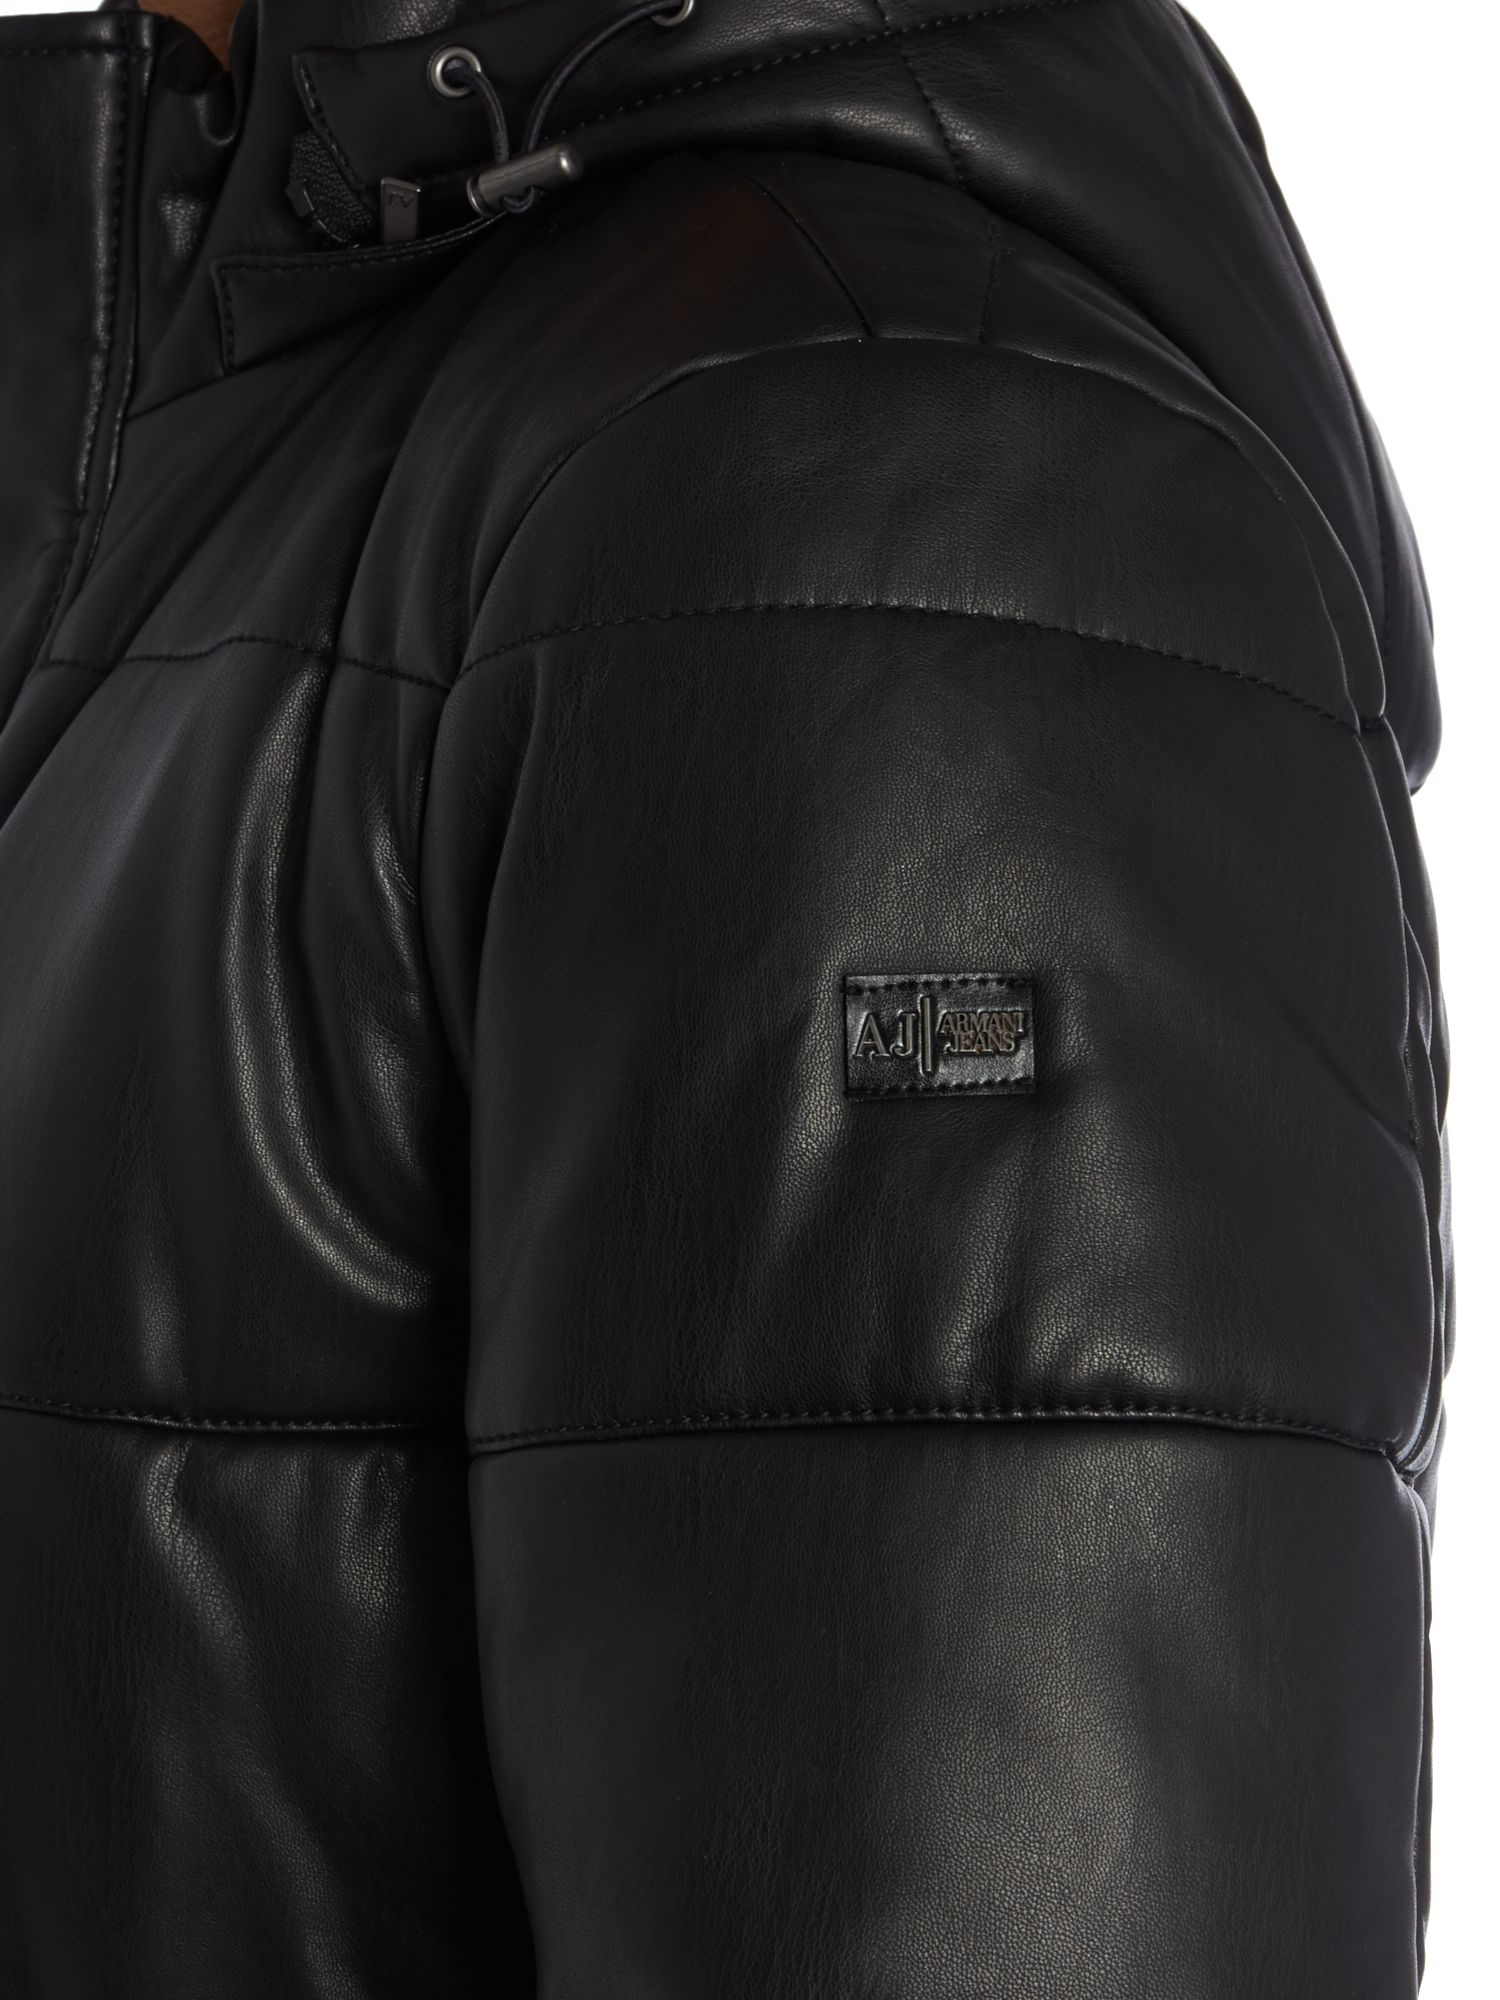 Armani jeans Quilted Leather Look Padded Jacket in Black for Men ... : armani jeans quilted jacket - Adamdwight.com